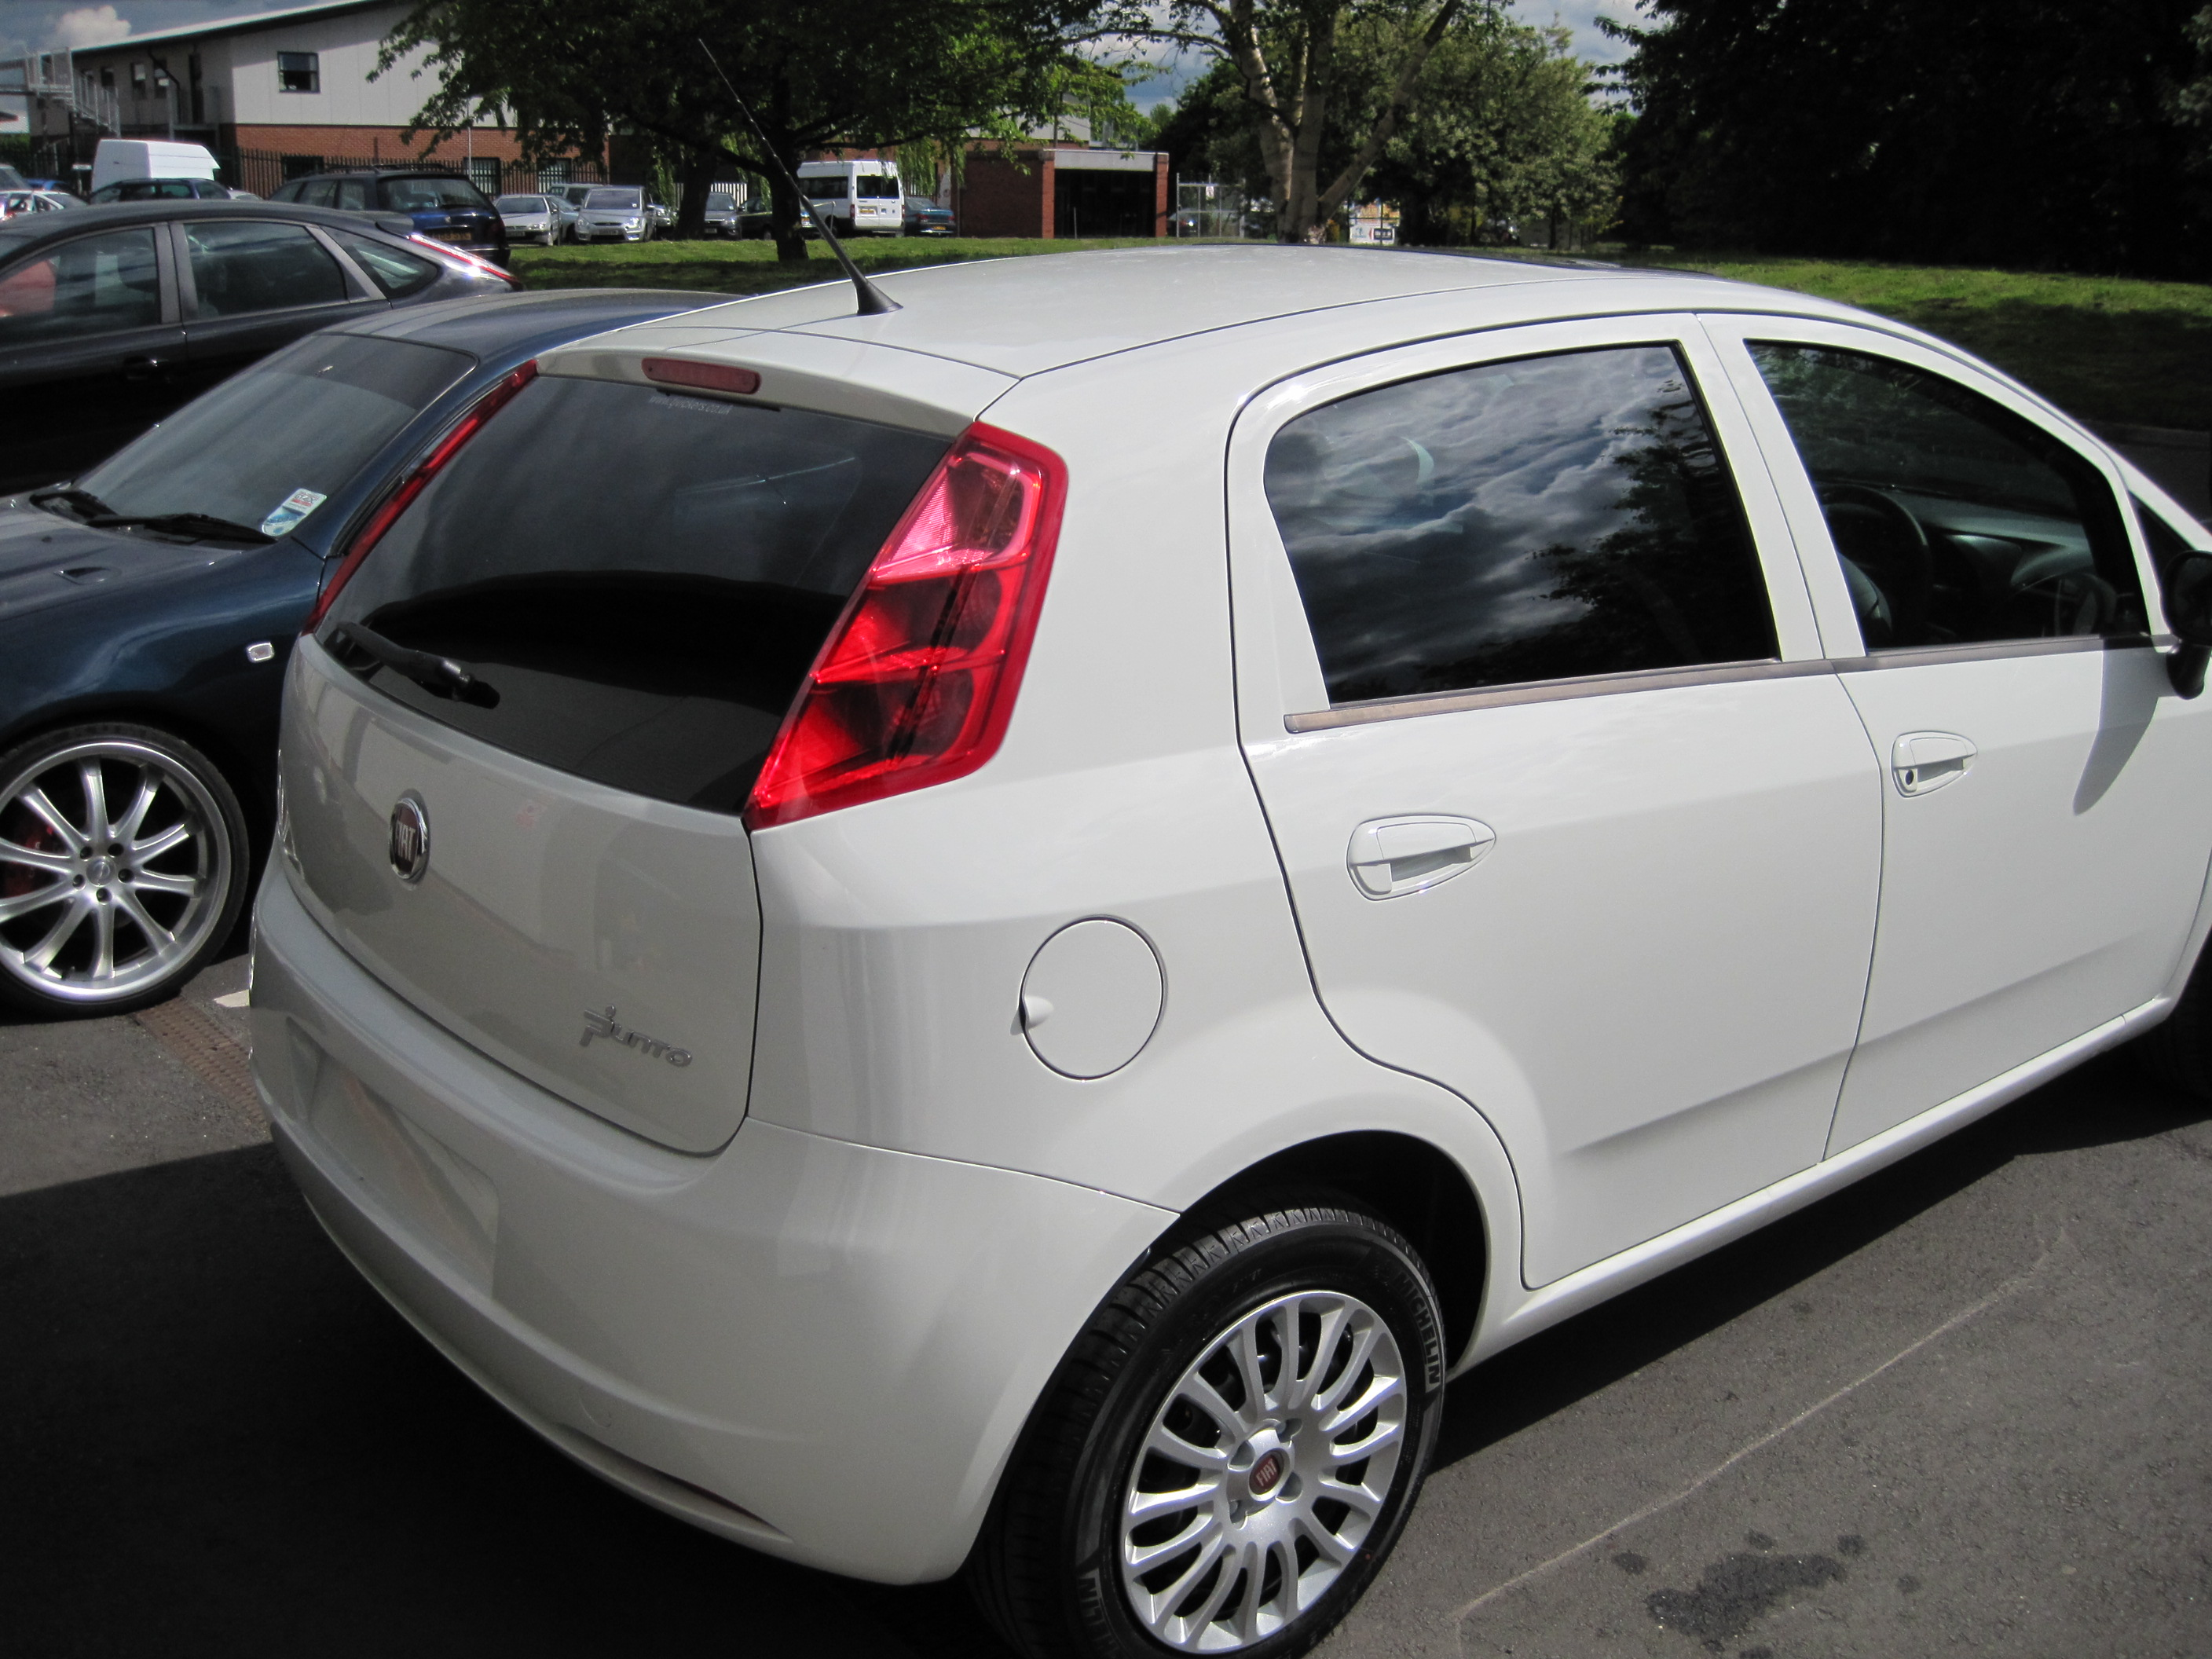 Fiat Punto Windows Tinted